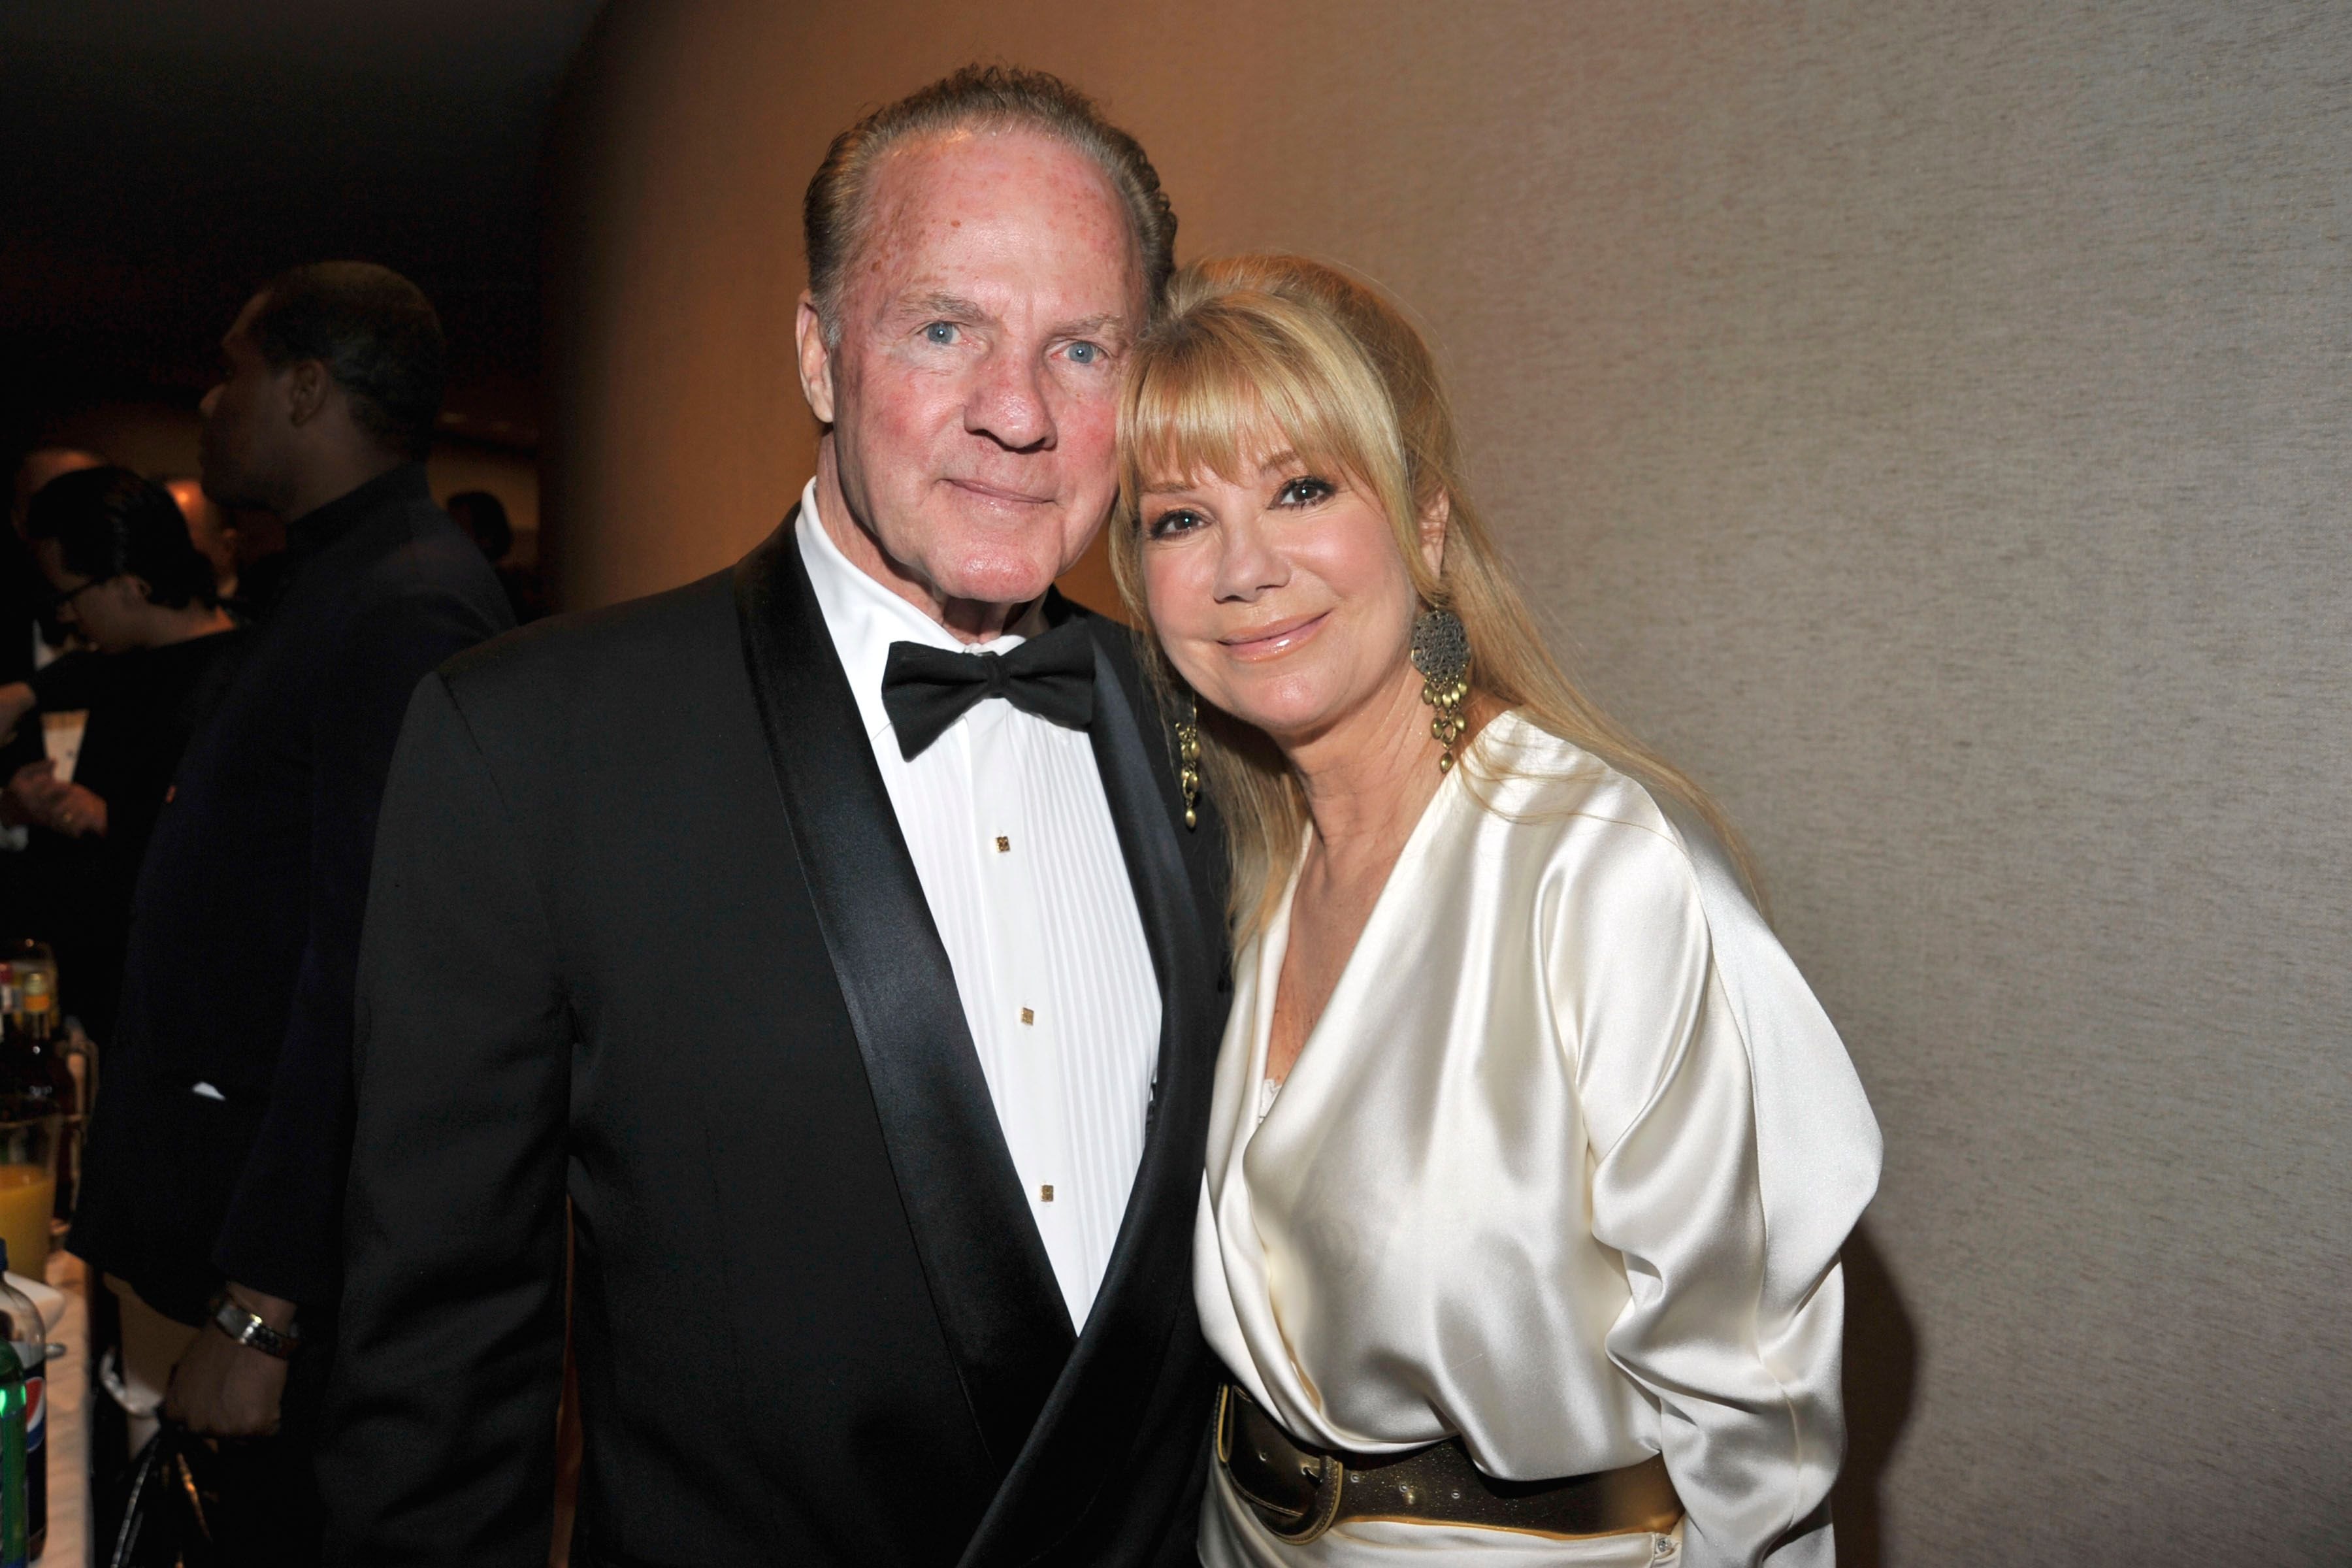 Frank Gifford and Kathie Lee Gifford at Literacy Partners Evening of Readings Gala at David H. Koch Theater on May 10th, 2010   Photo: Getty Images